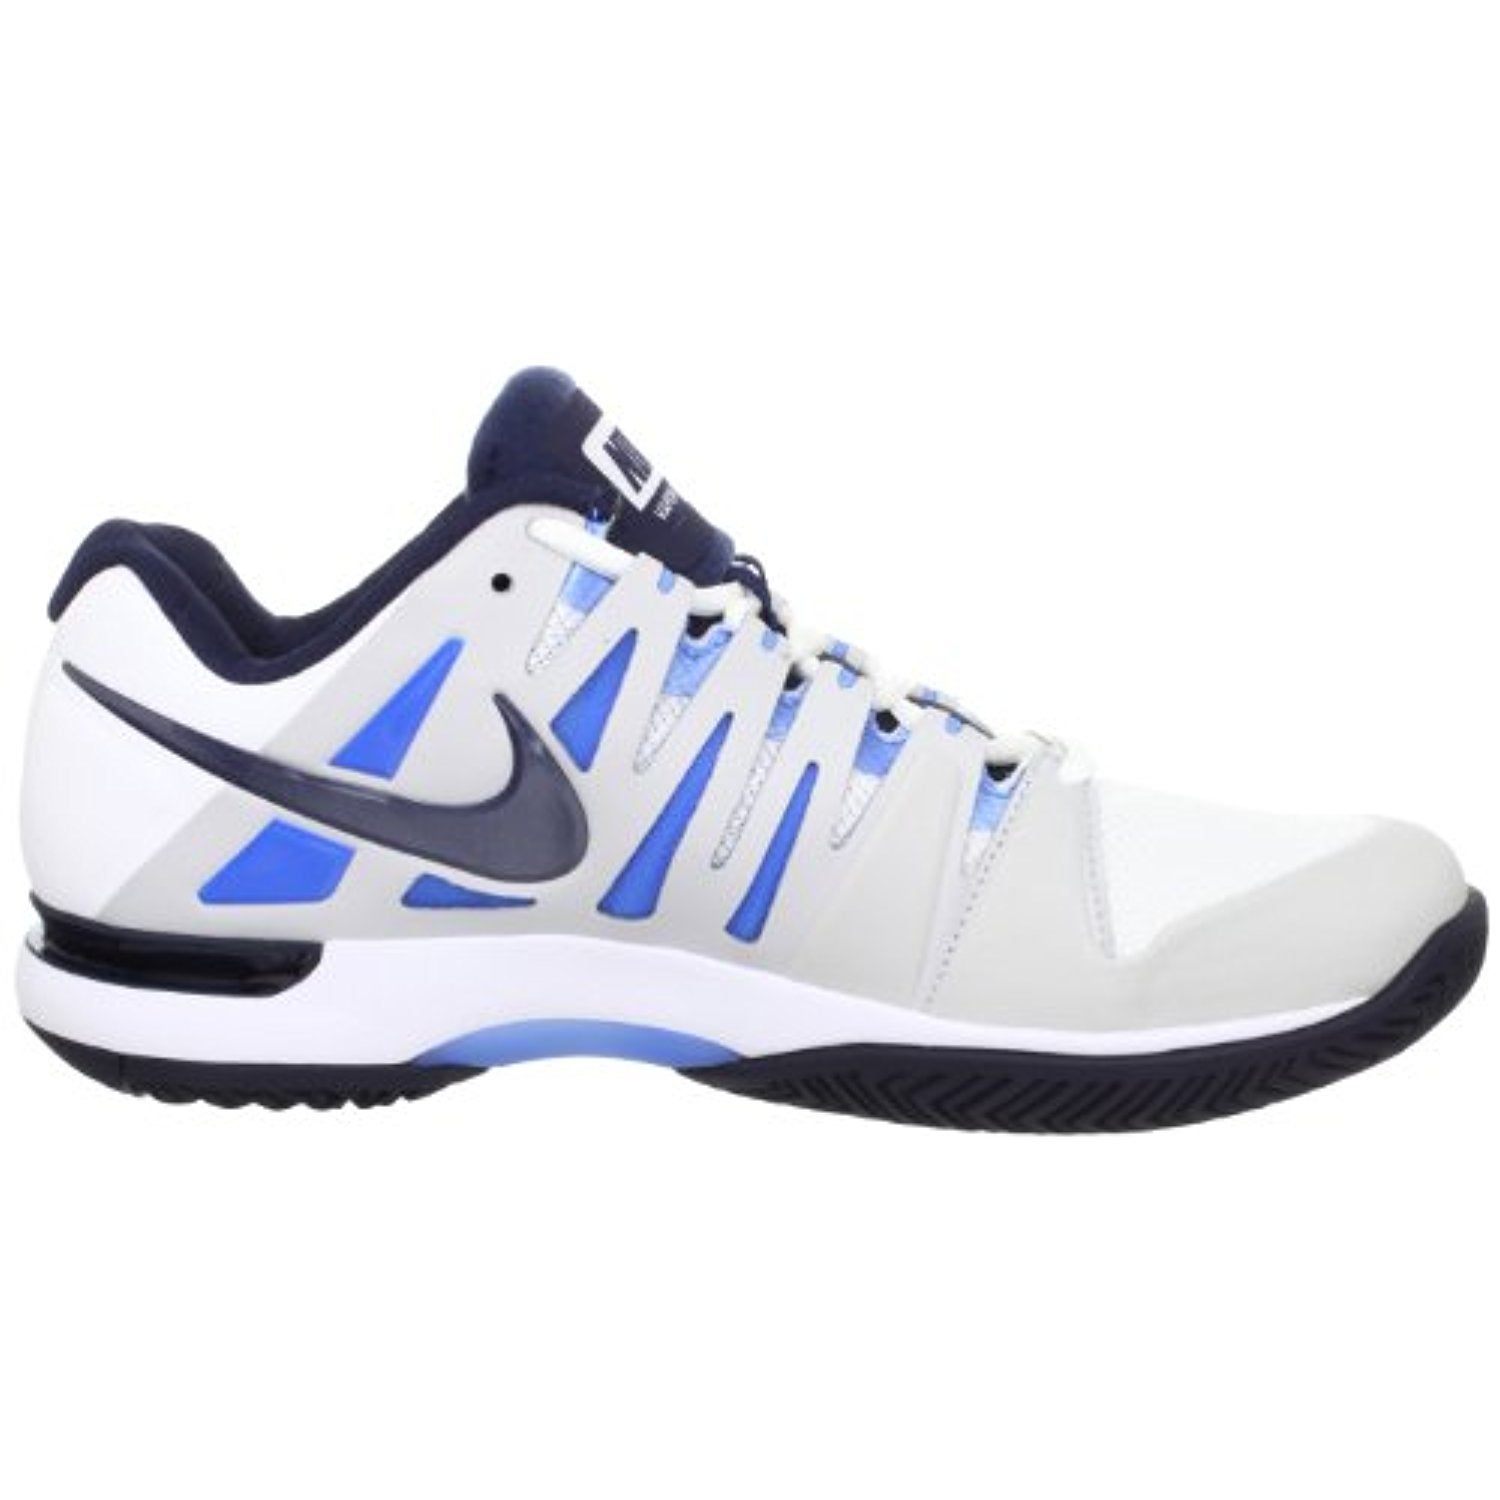 f3b73e5ecf64 Shop Nike Zoom Vapor 9 Tour White Blue Federer Mens Tennis Shoes 488000-144   US size 12  - Free Shipping Today - Overstock - 18279691